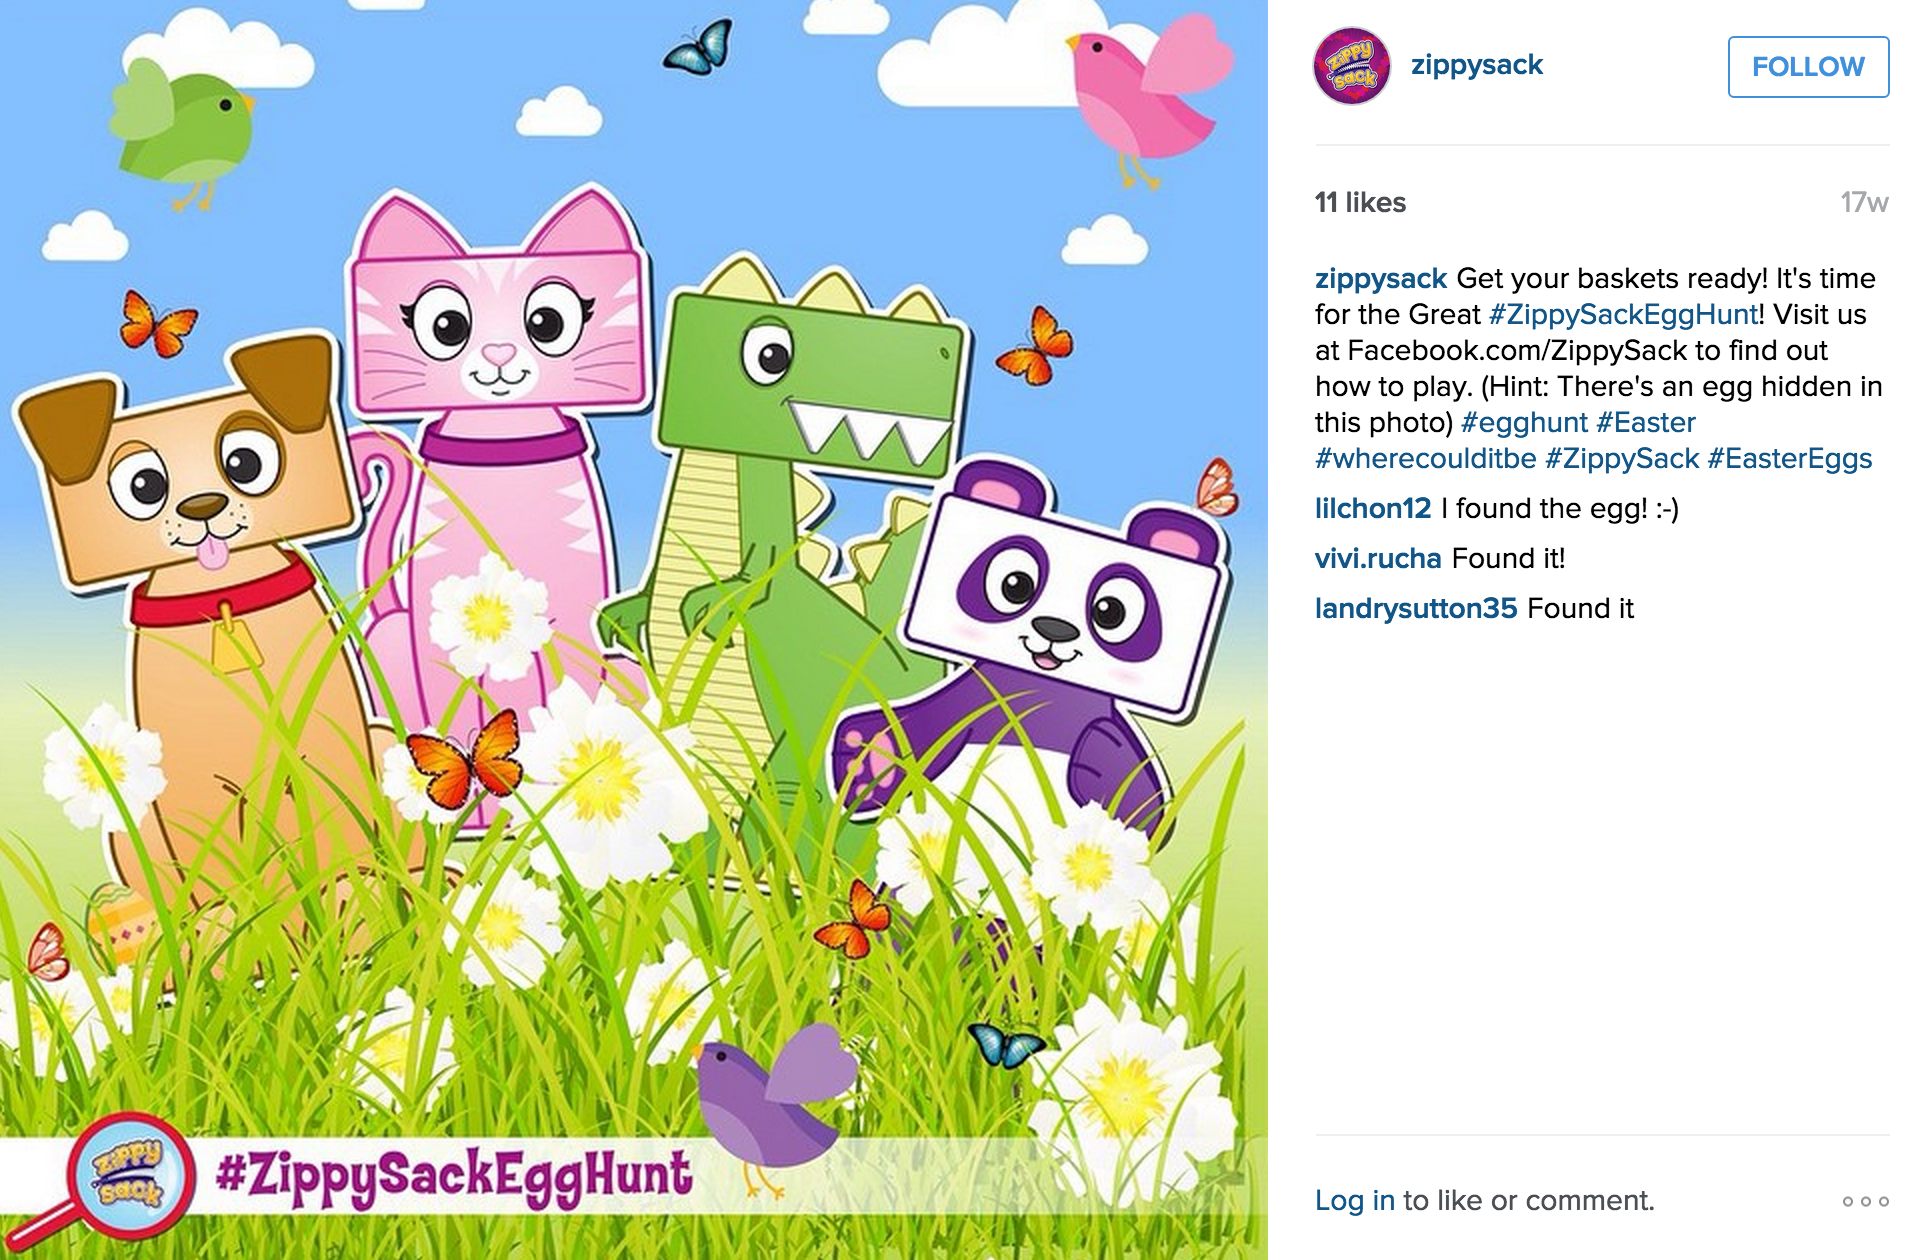 Instagram: The Great ZippySack Egg Hunt